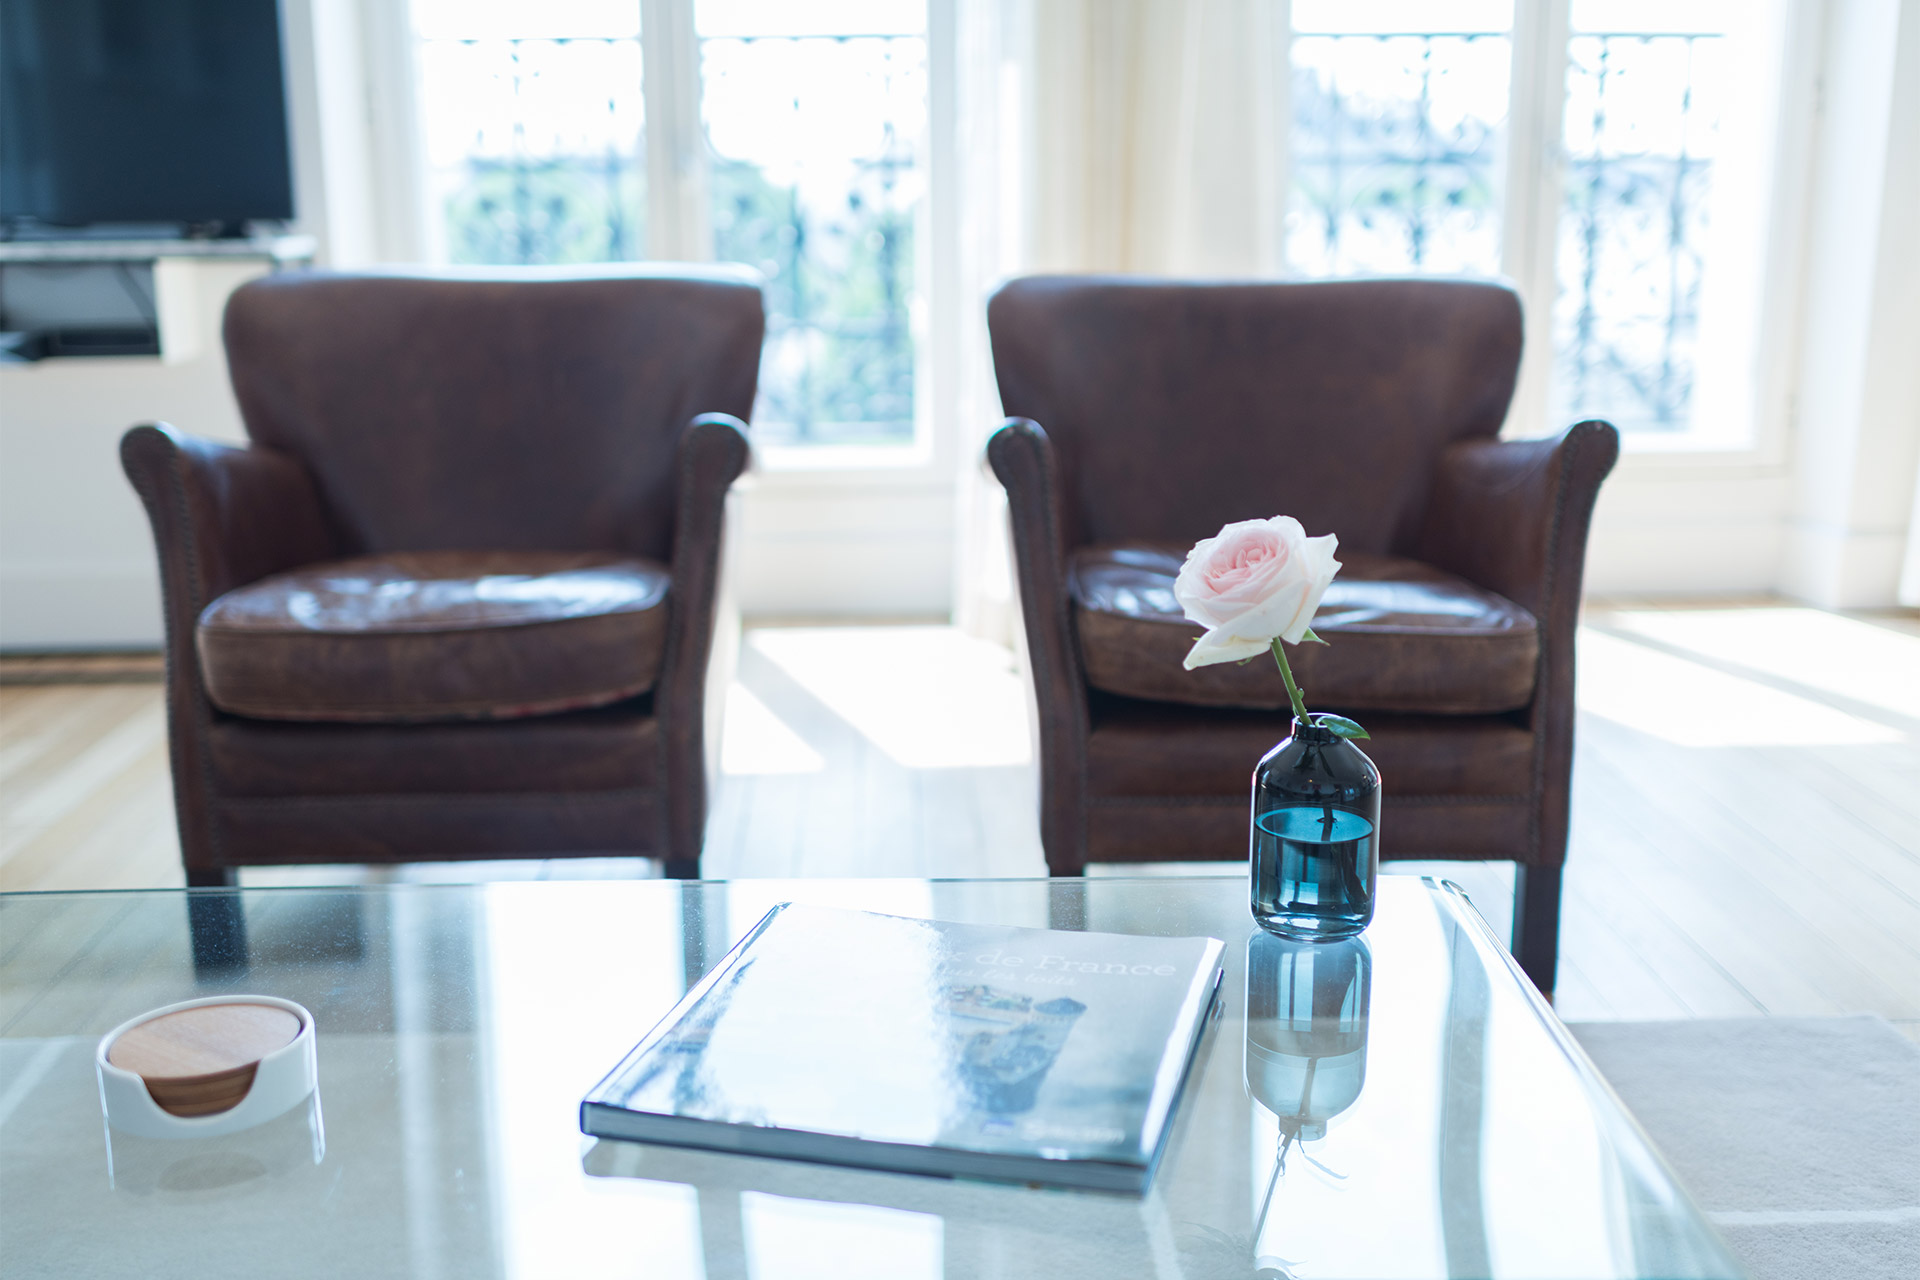 Two stylish leather arm chairs in the Mondeuse vacation rental offered by Paris Perfect